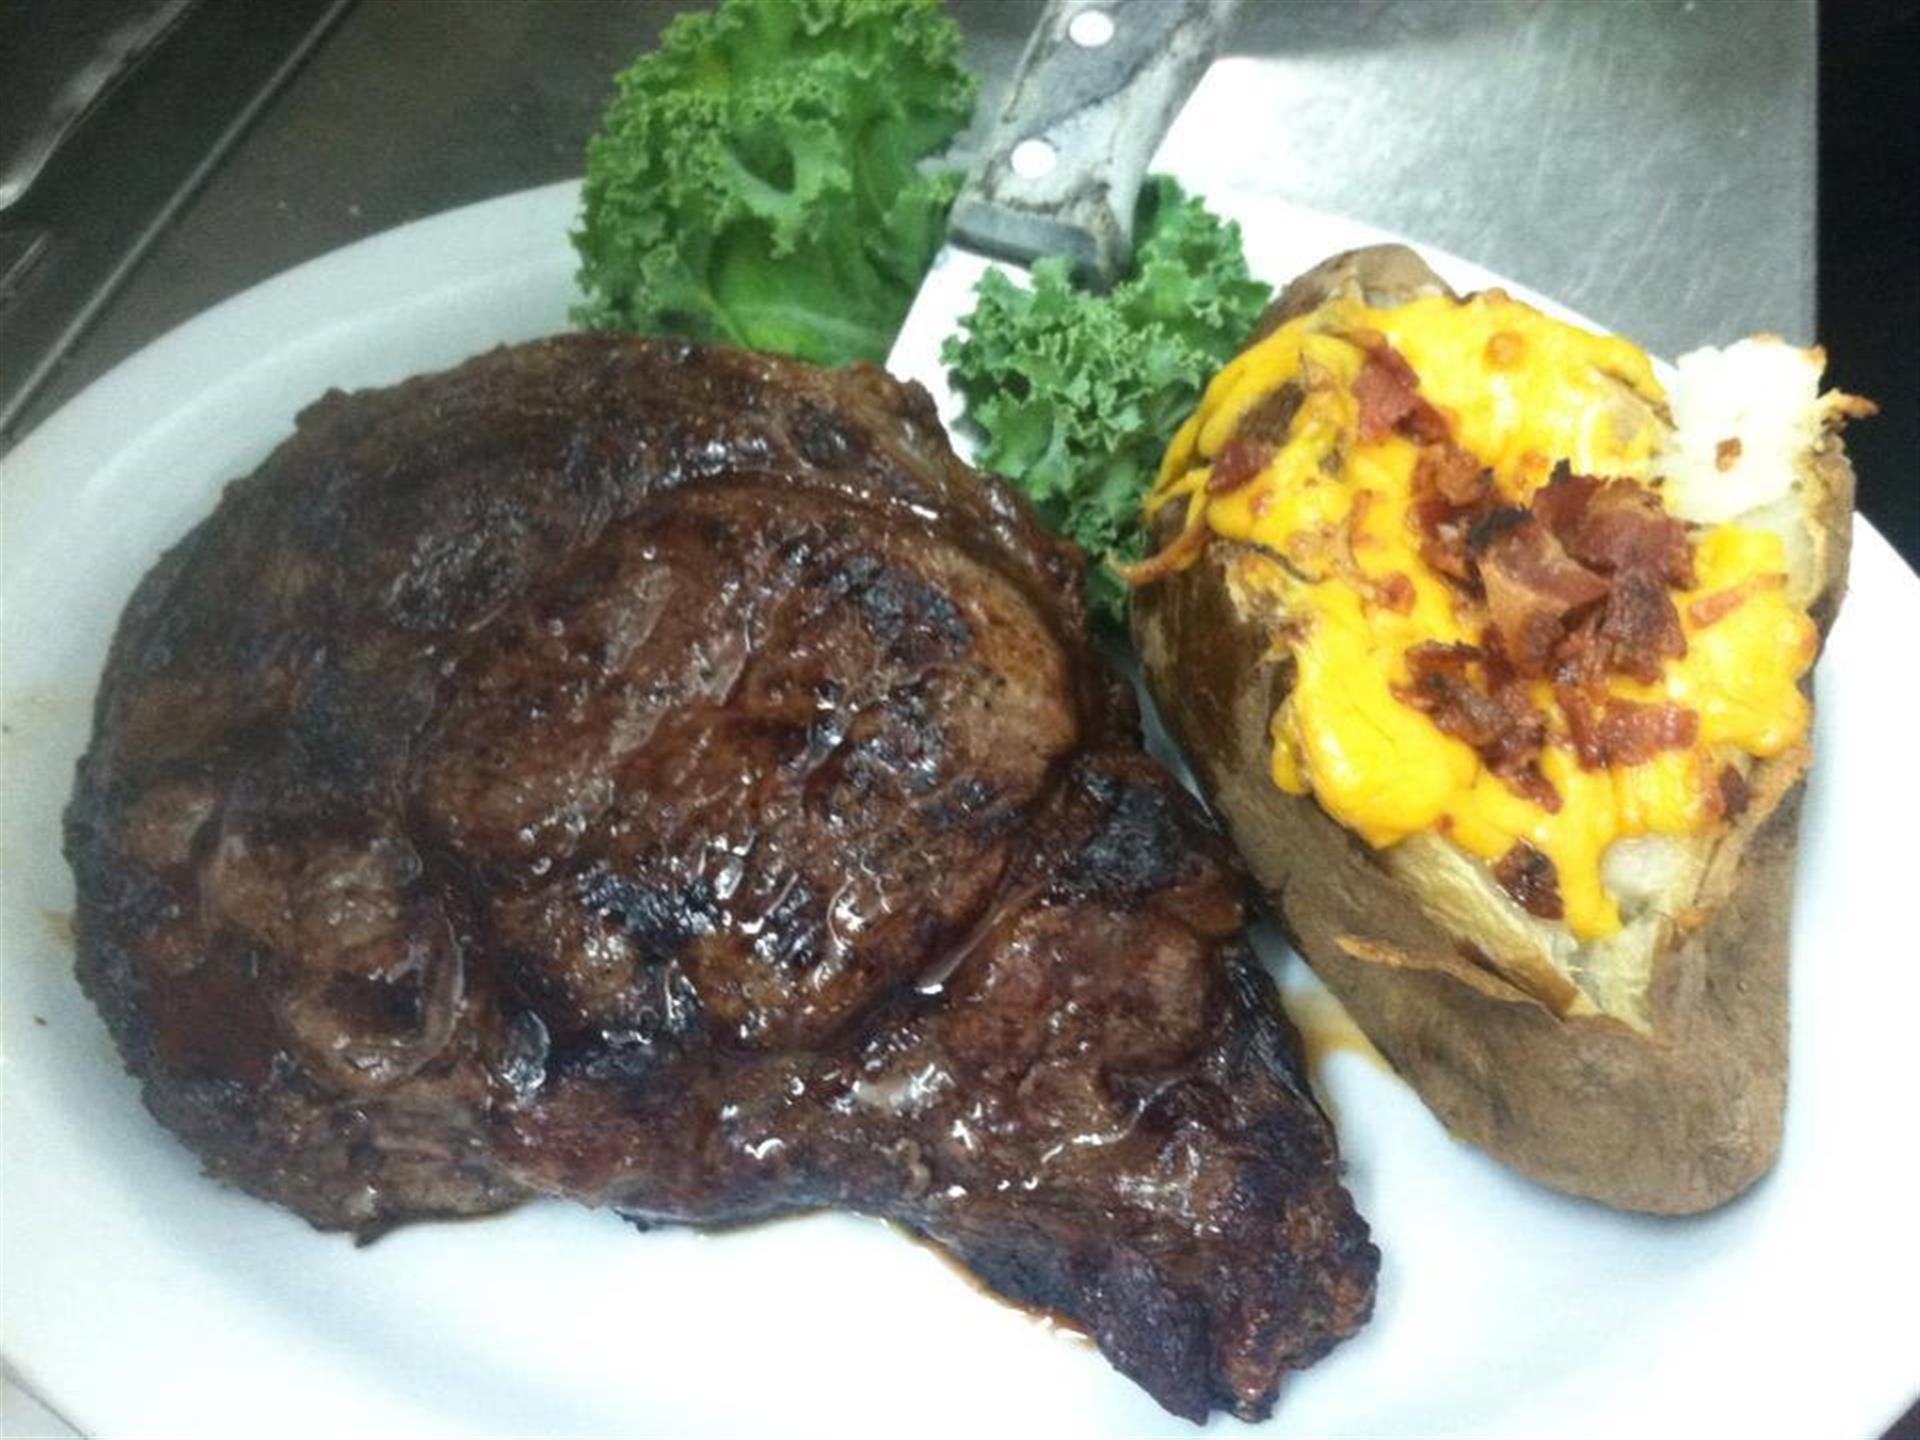 Steak and baked potato on white plate